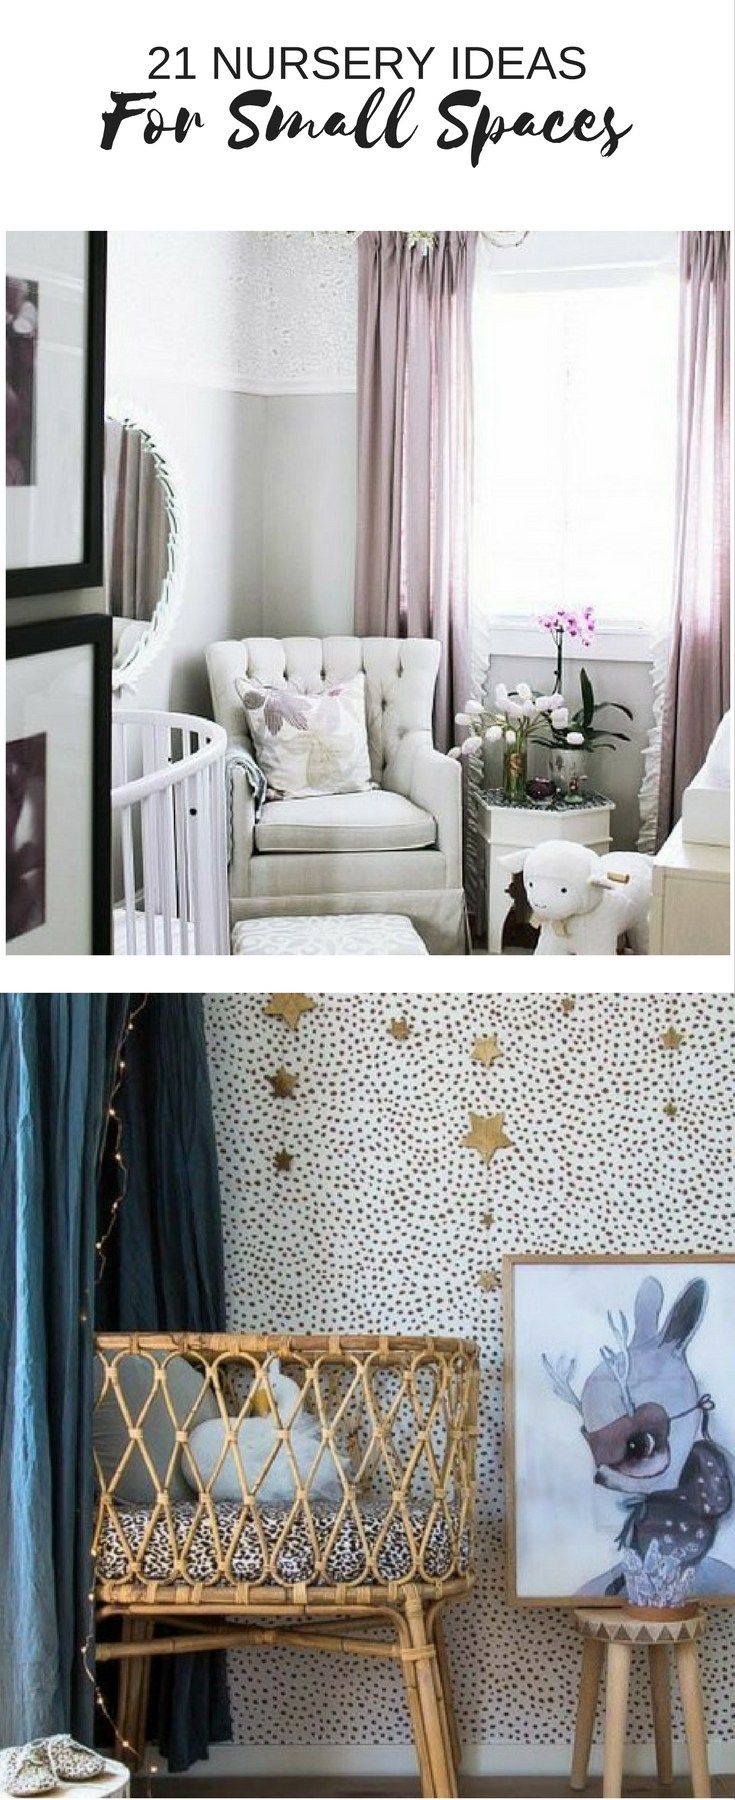 Top tips for making a baby s nursery special - Baby Nursery Ideas For Small Spaces Find Out Our Top Tips And Tricks For Making